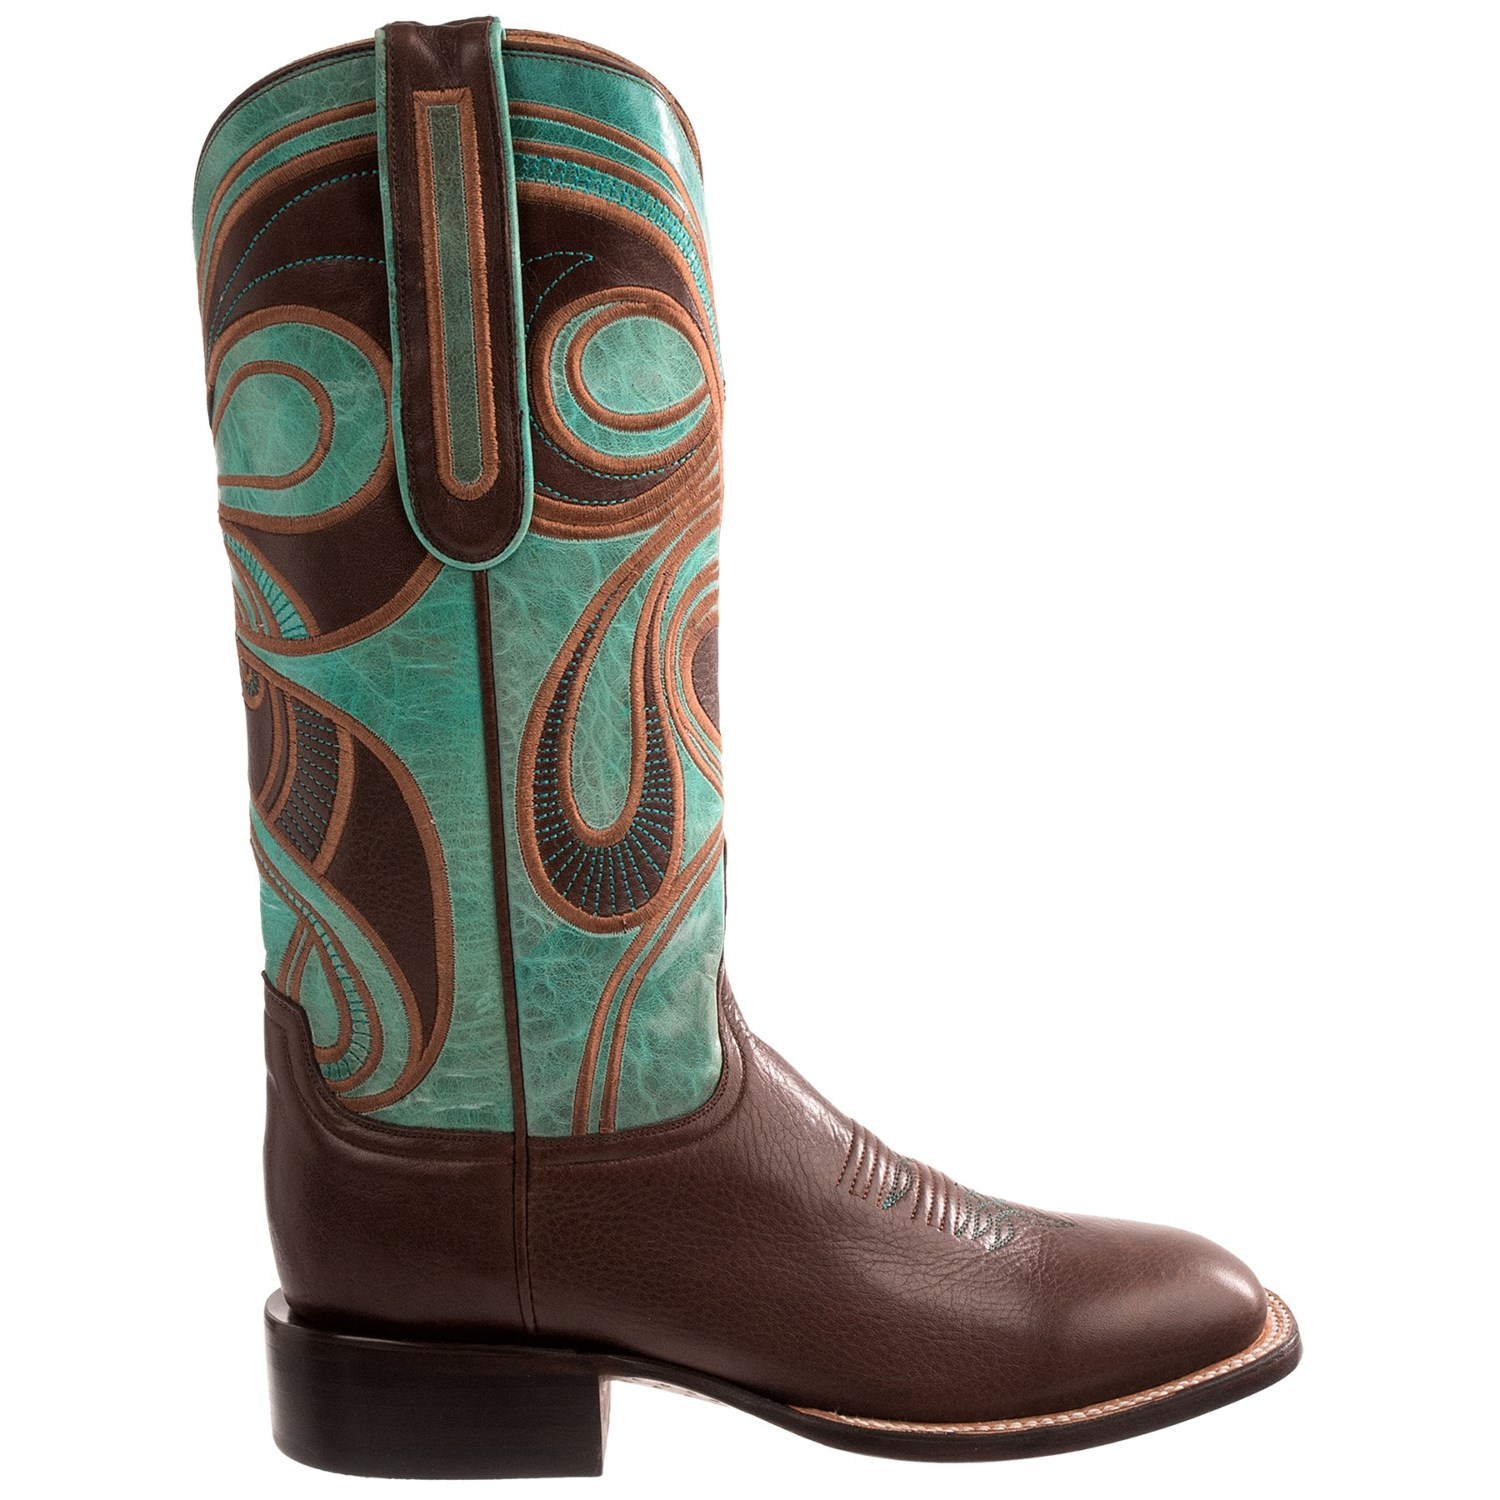 1883 By Lucchese Hypnotic Swirl Cowboy Boots For Women 8271j